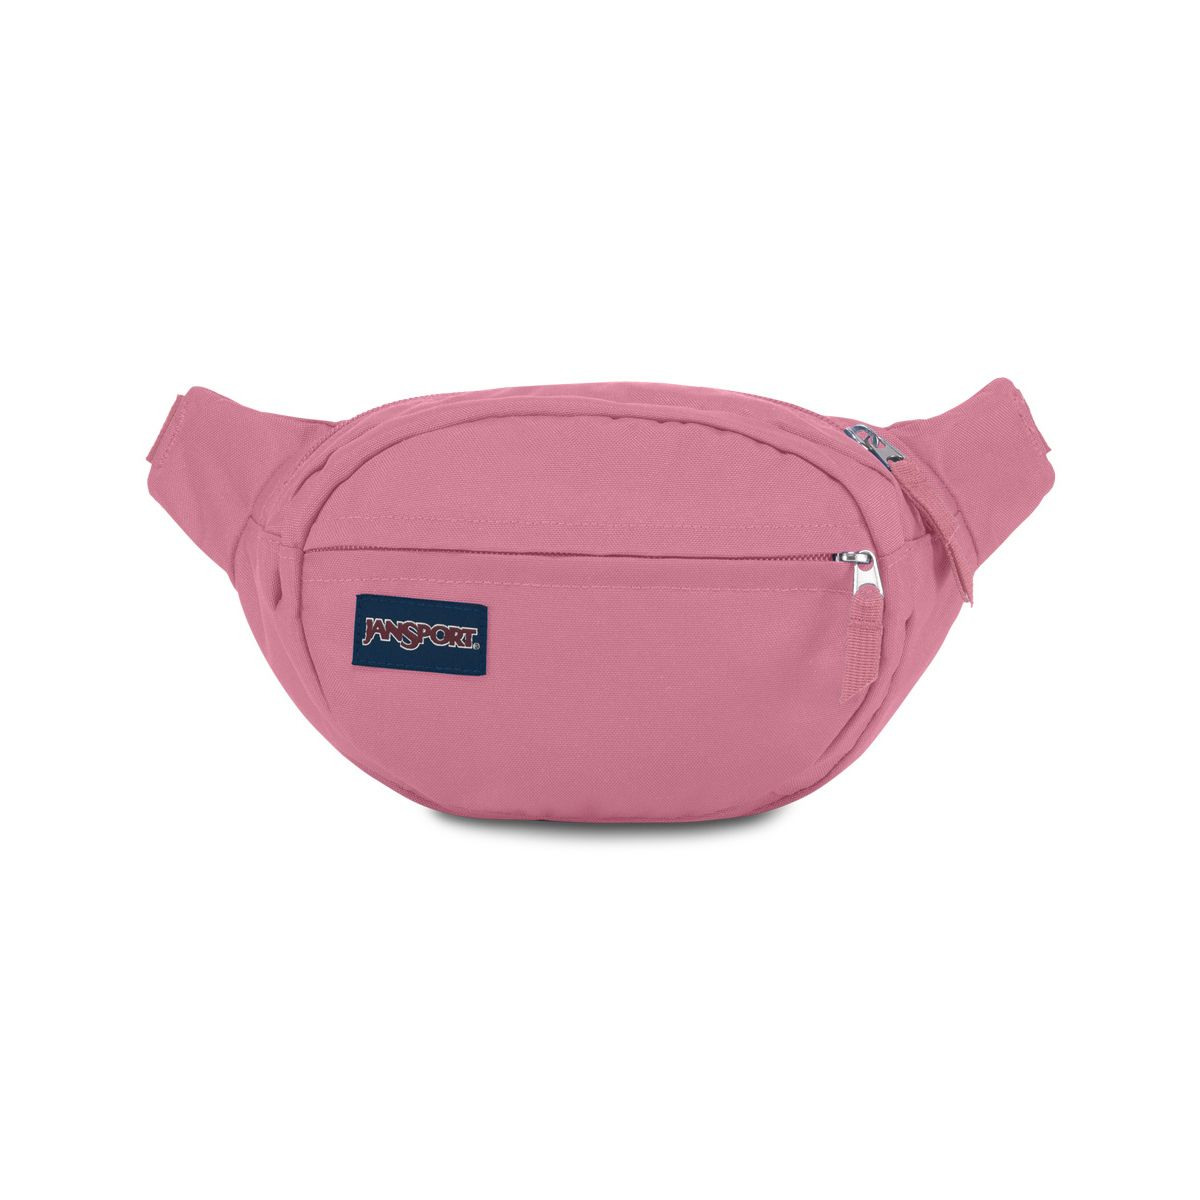 JanSport Fifth Ave Fanny Pack in Blackberry Mousse